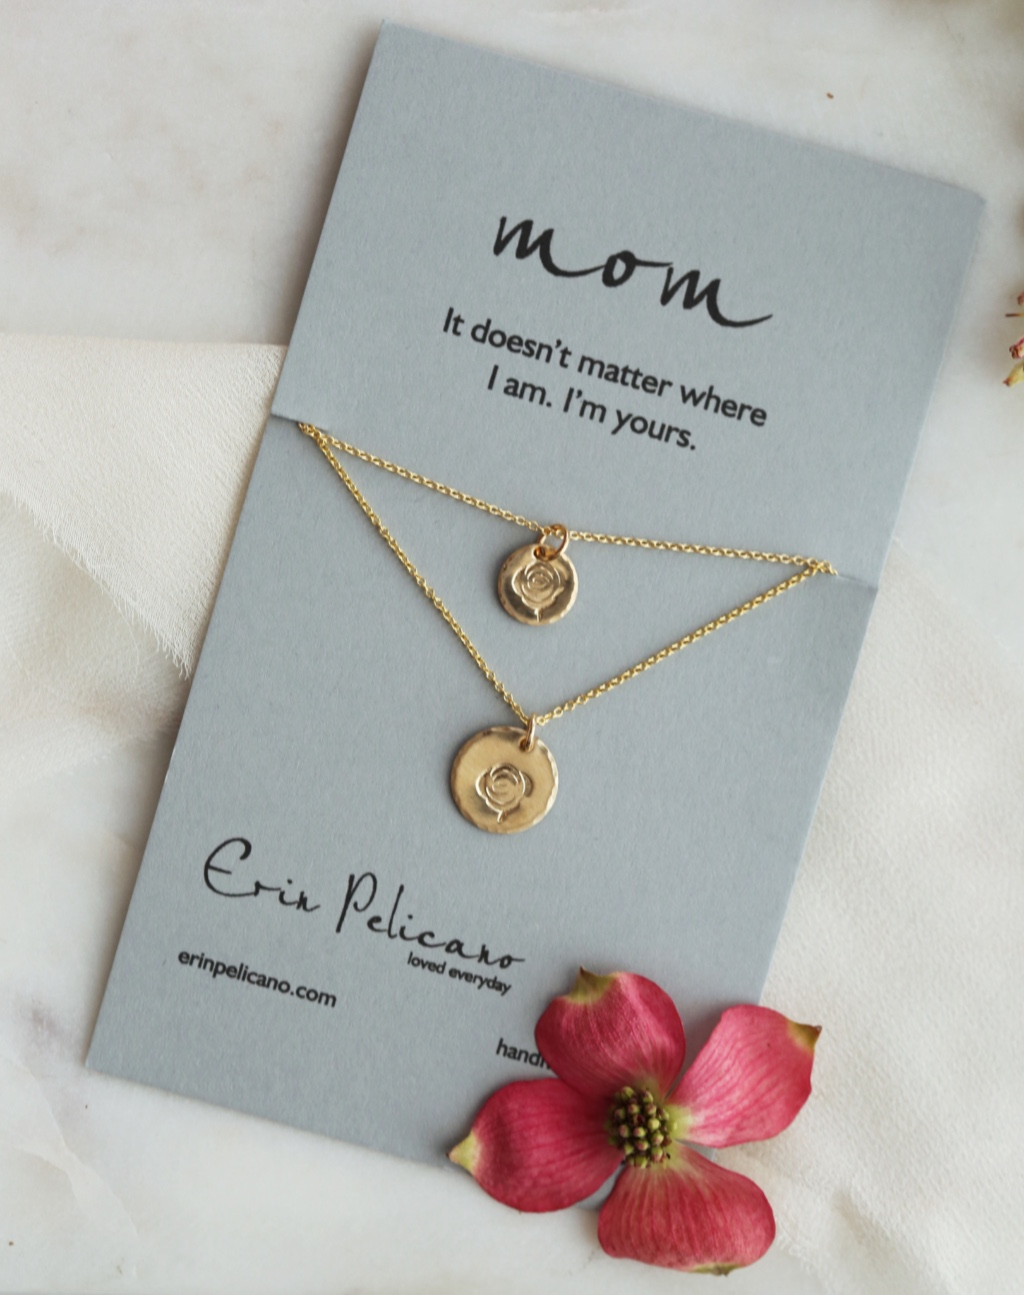 Visit our best selling Mother Daughter necklace and jewelry collection